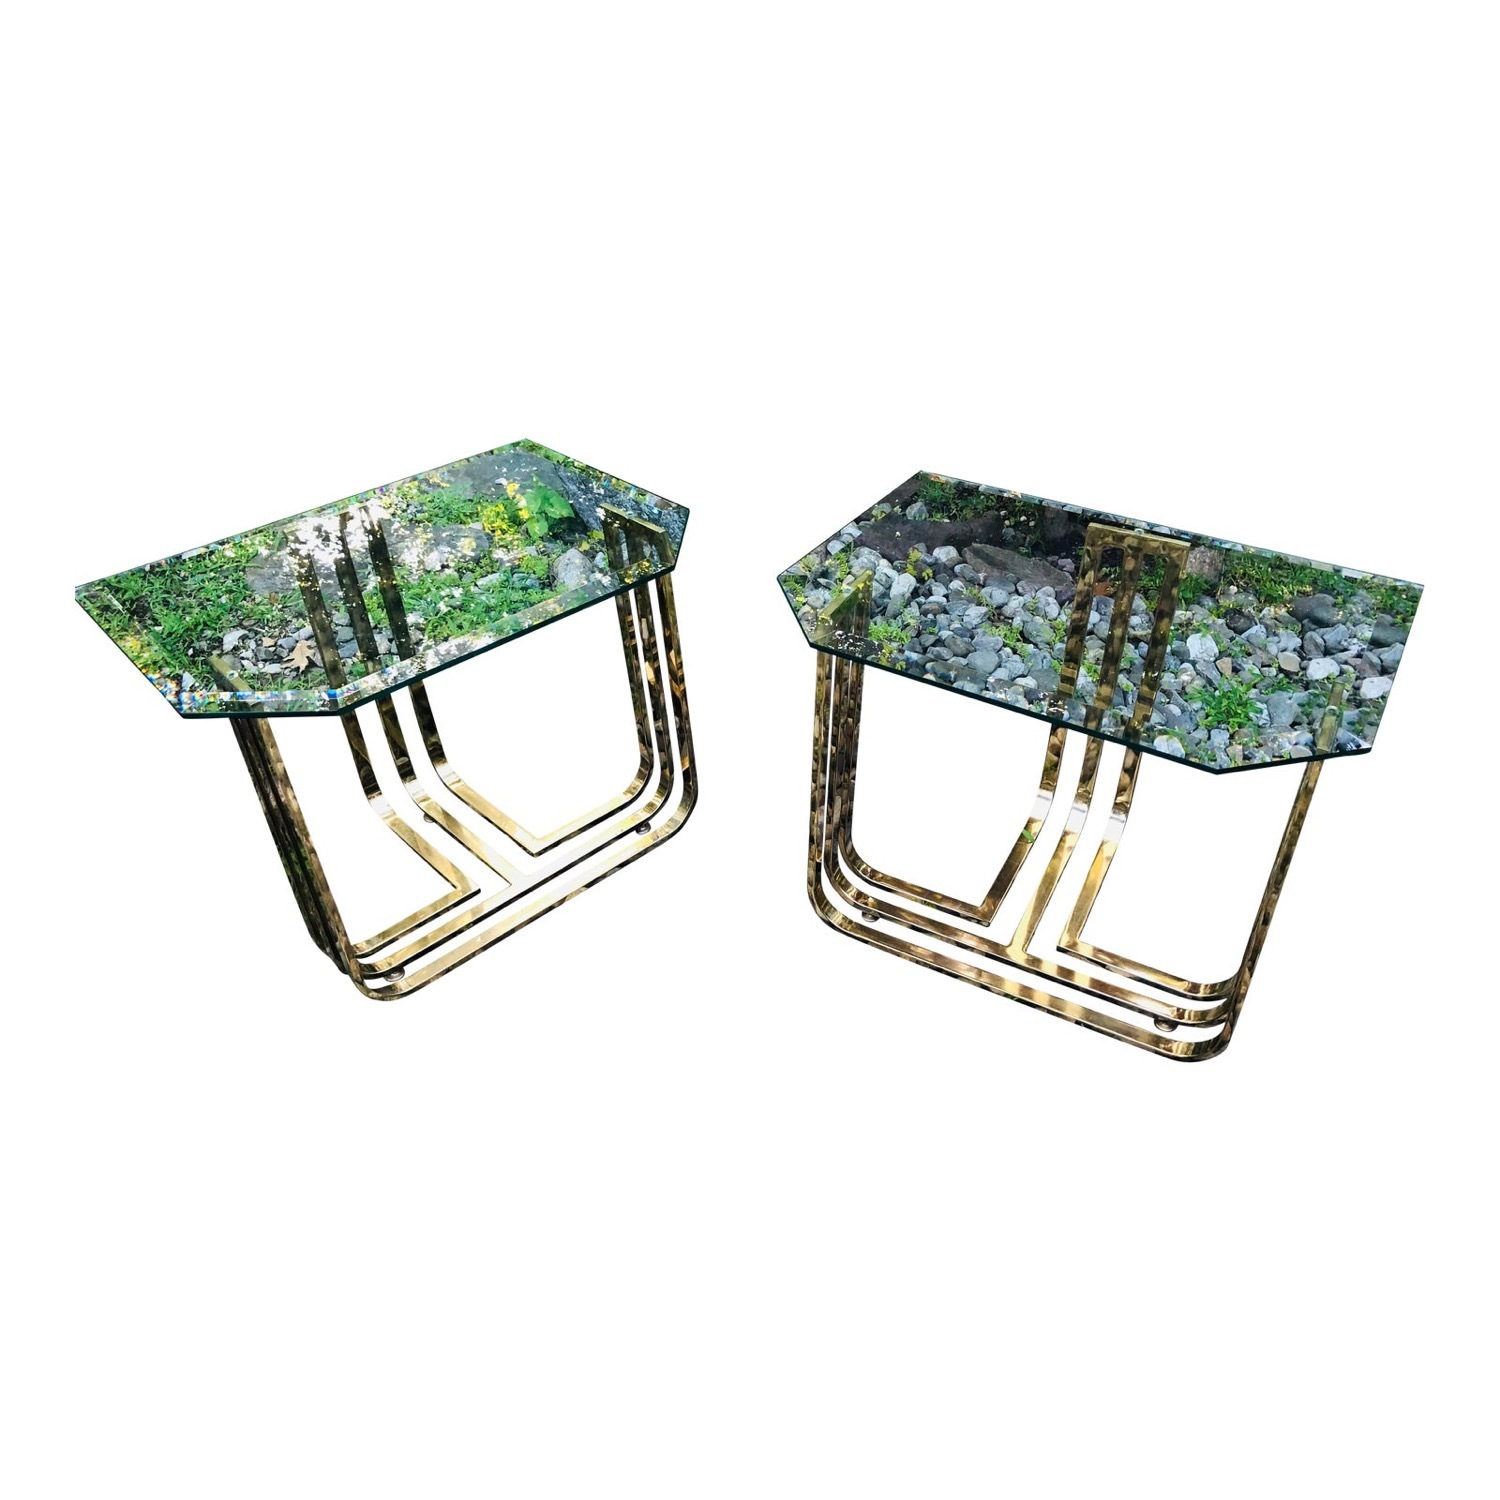 Vintage Brass and Glass Side Table Deco Glam Style - image-1